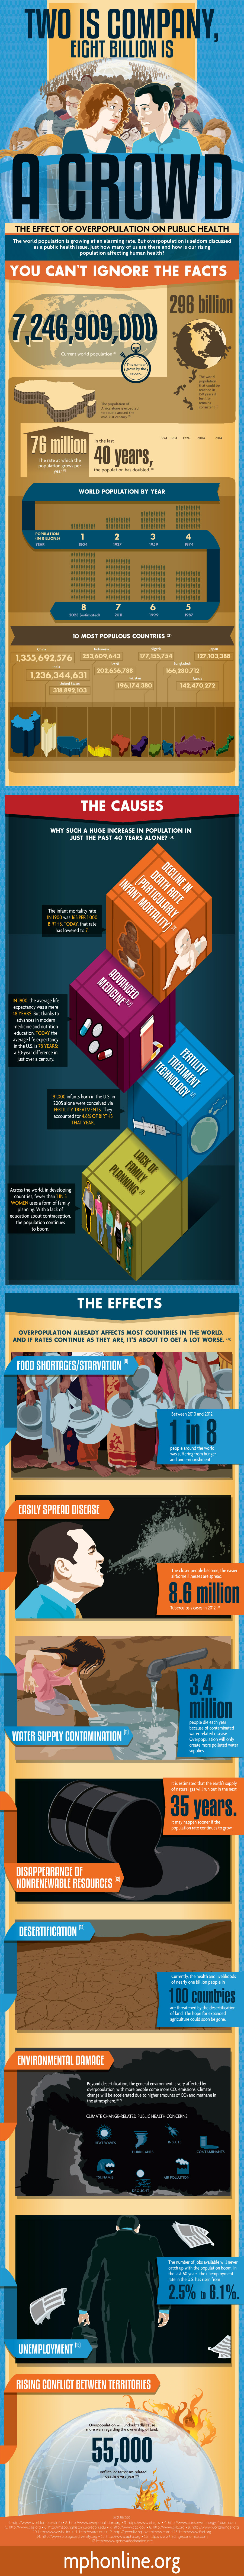 Infographic: The Effect of Overpopulation on Public Health #infographic